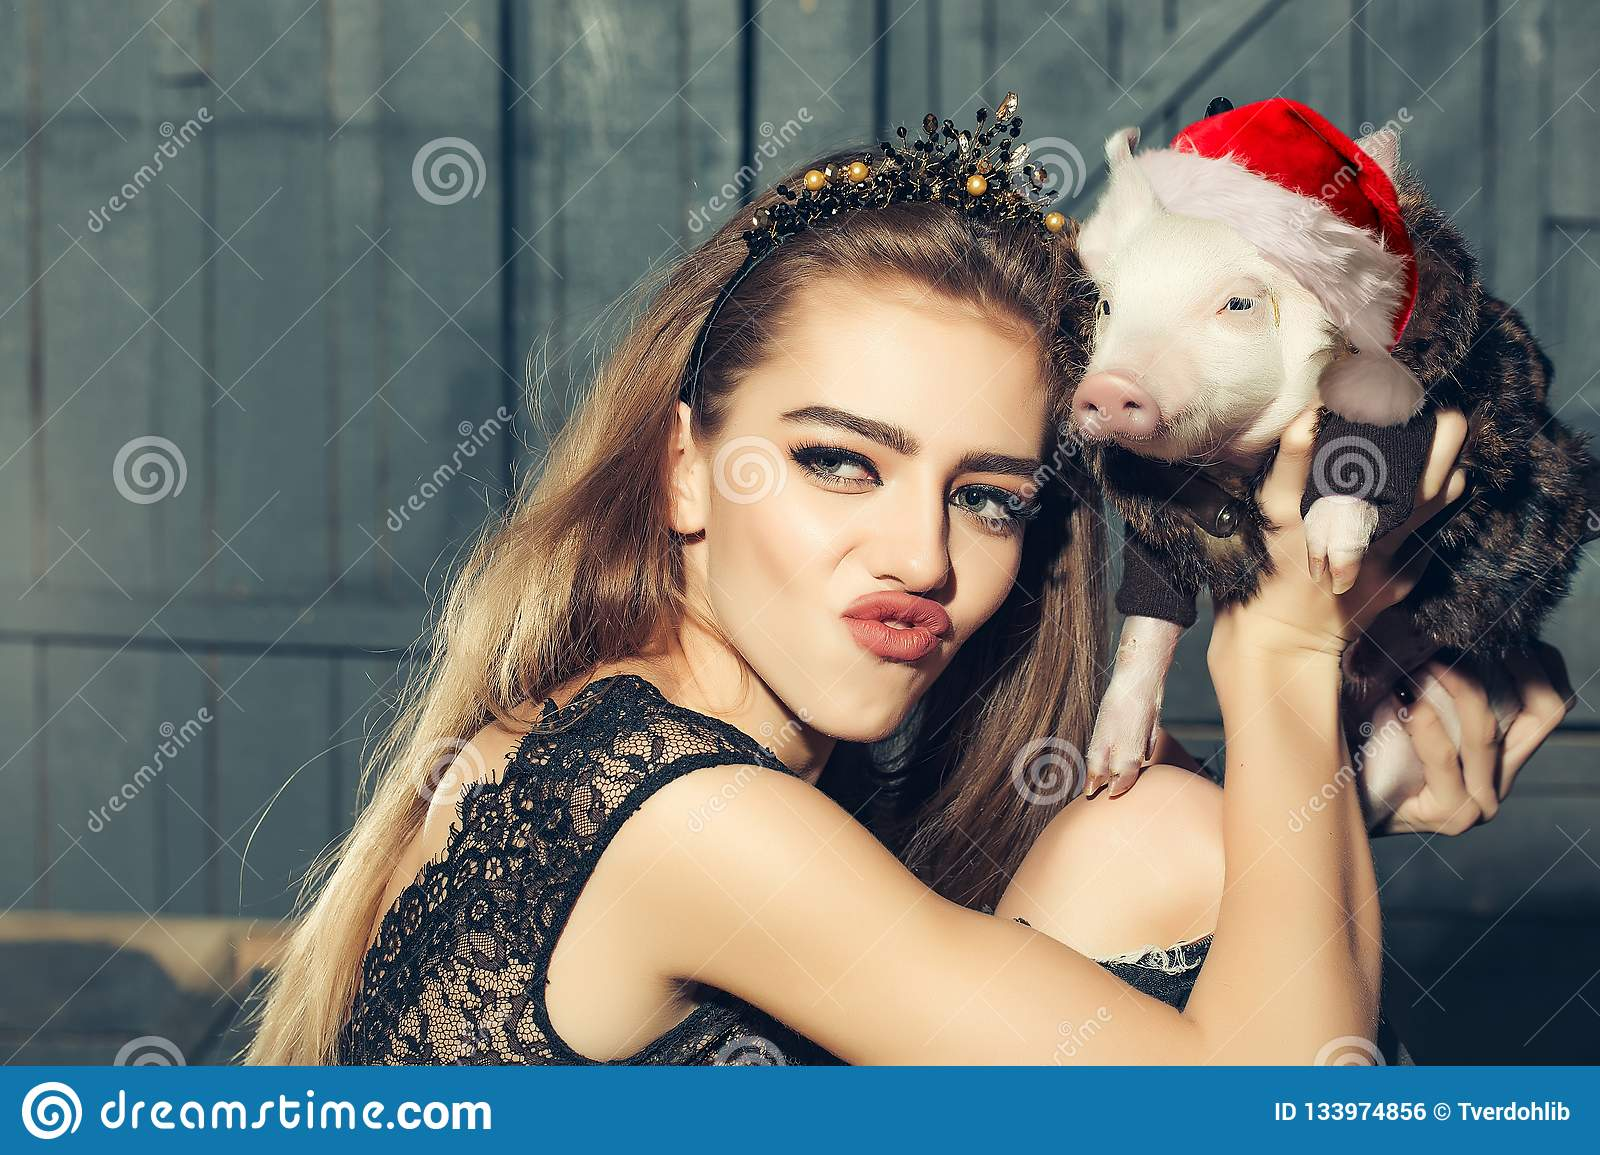 Chinese New Year 2019. Lucky Pig. The year of the pig. Womans with baby pig with christmas hat celebrating Chinese New